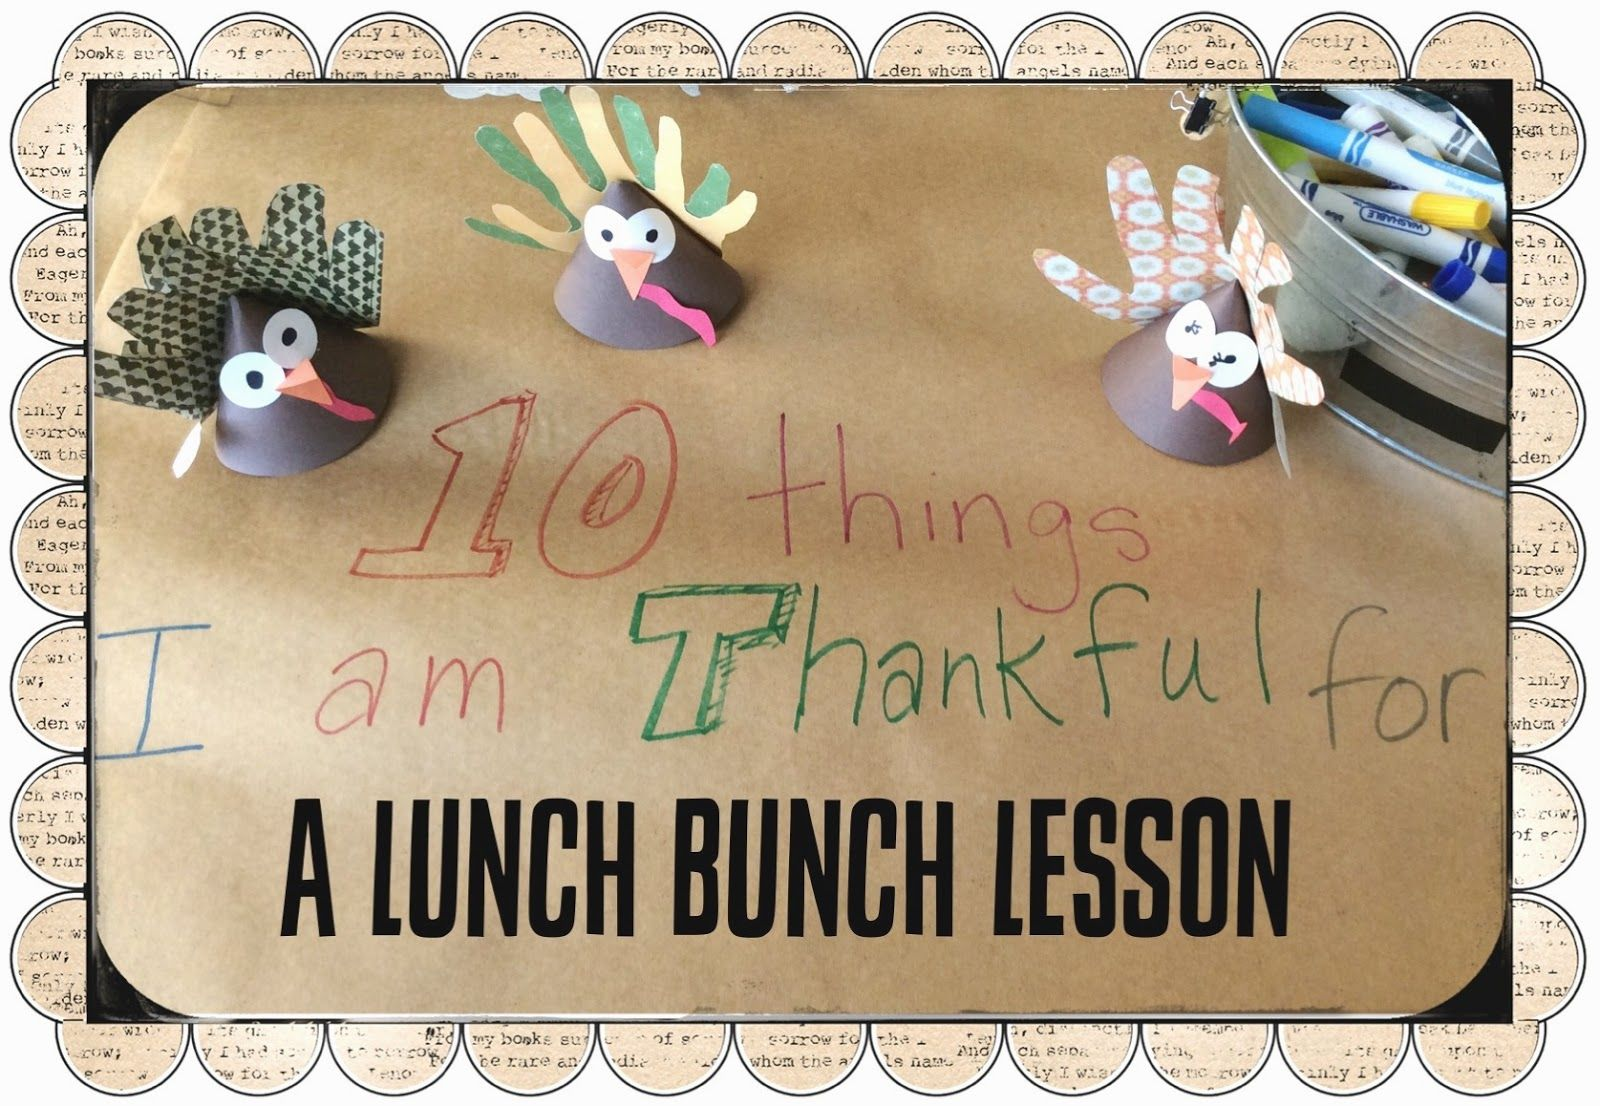 10 Things I Am Thankful For Lunch Bunch Lesson